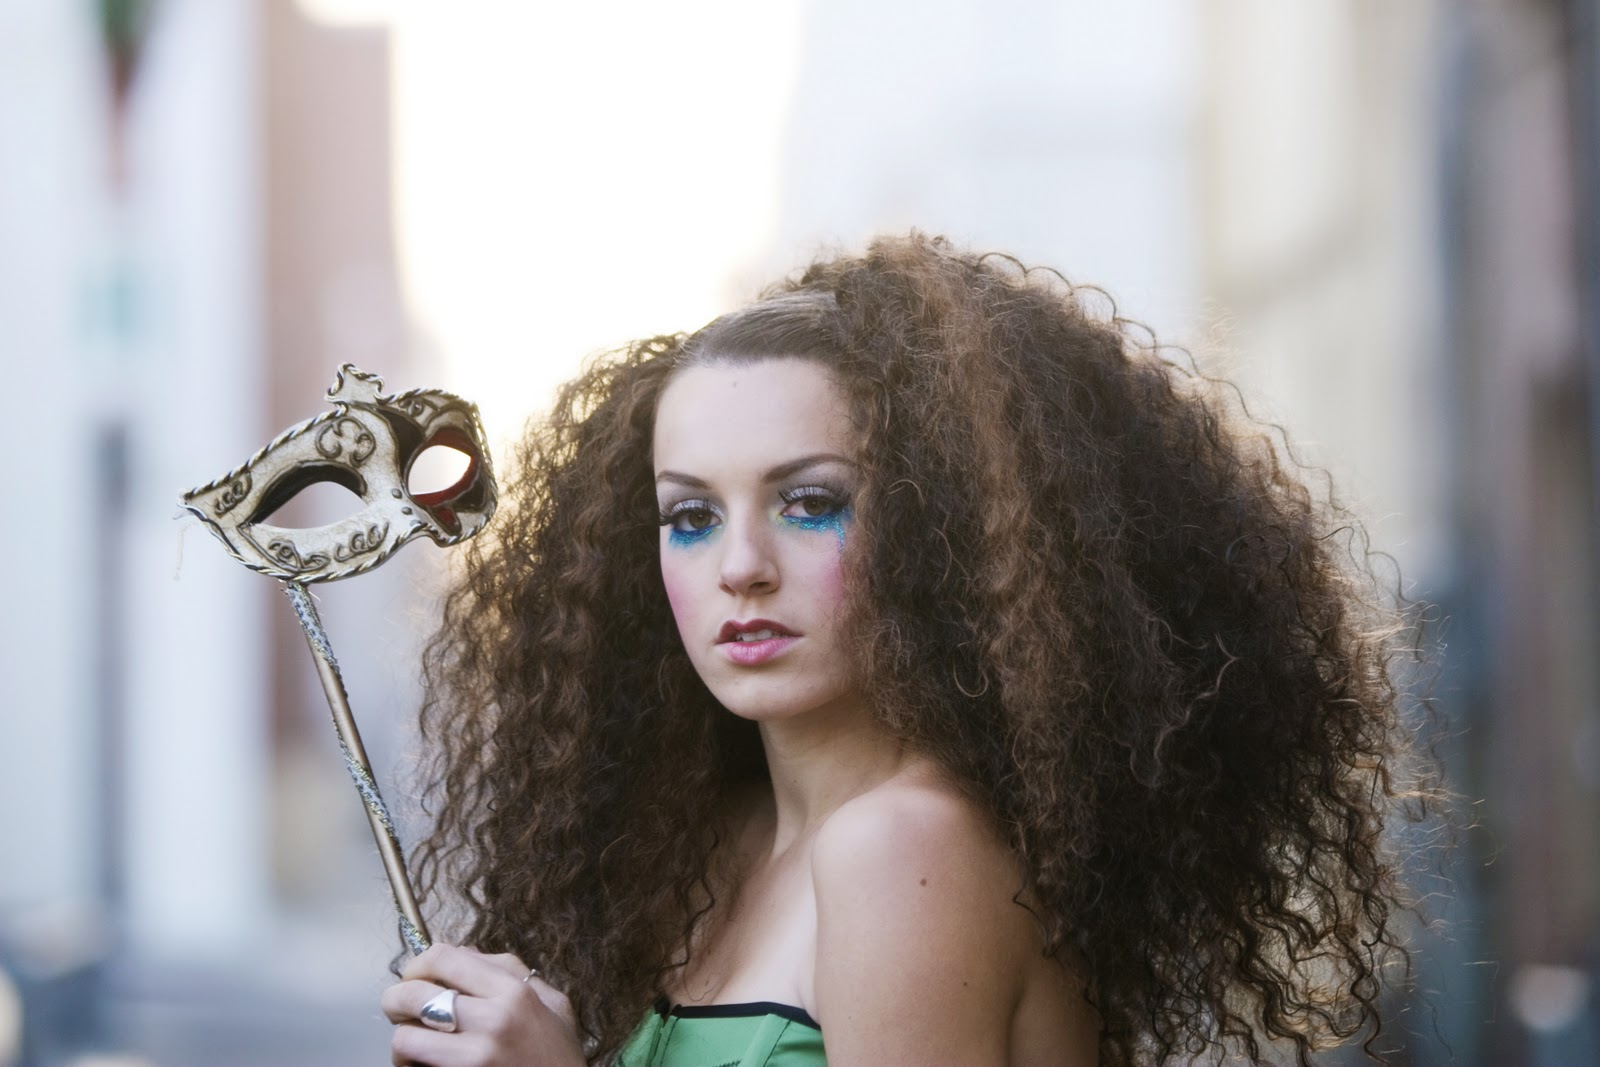 Hair And Makeup Artistry: Jacquetta Style Hair And Makeup Artistry: Be Inspired